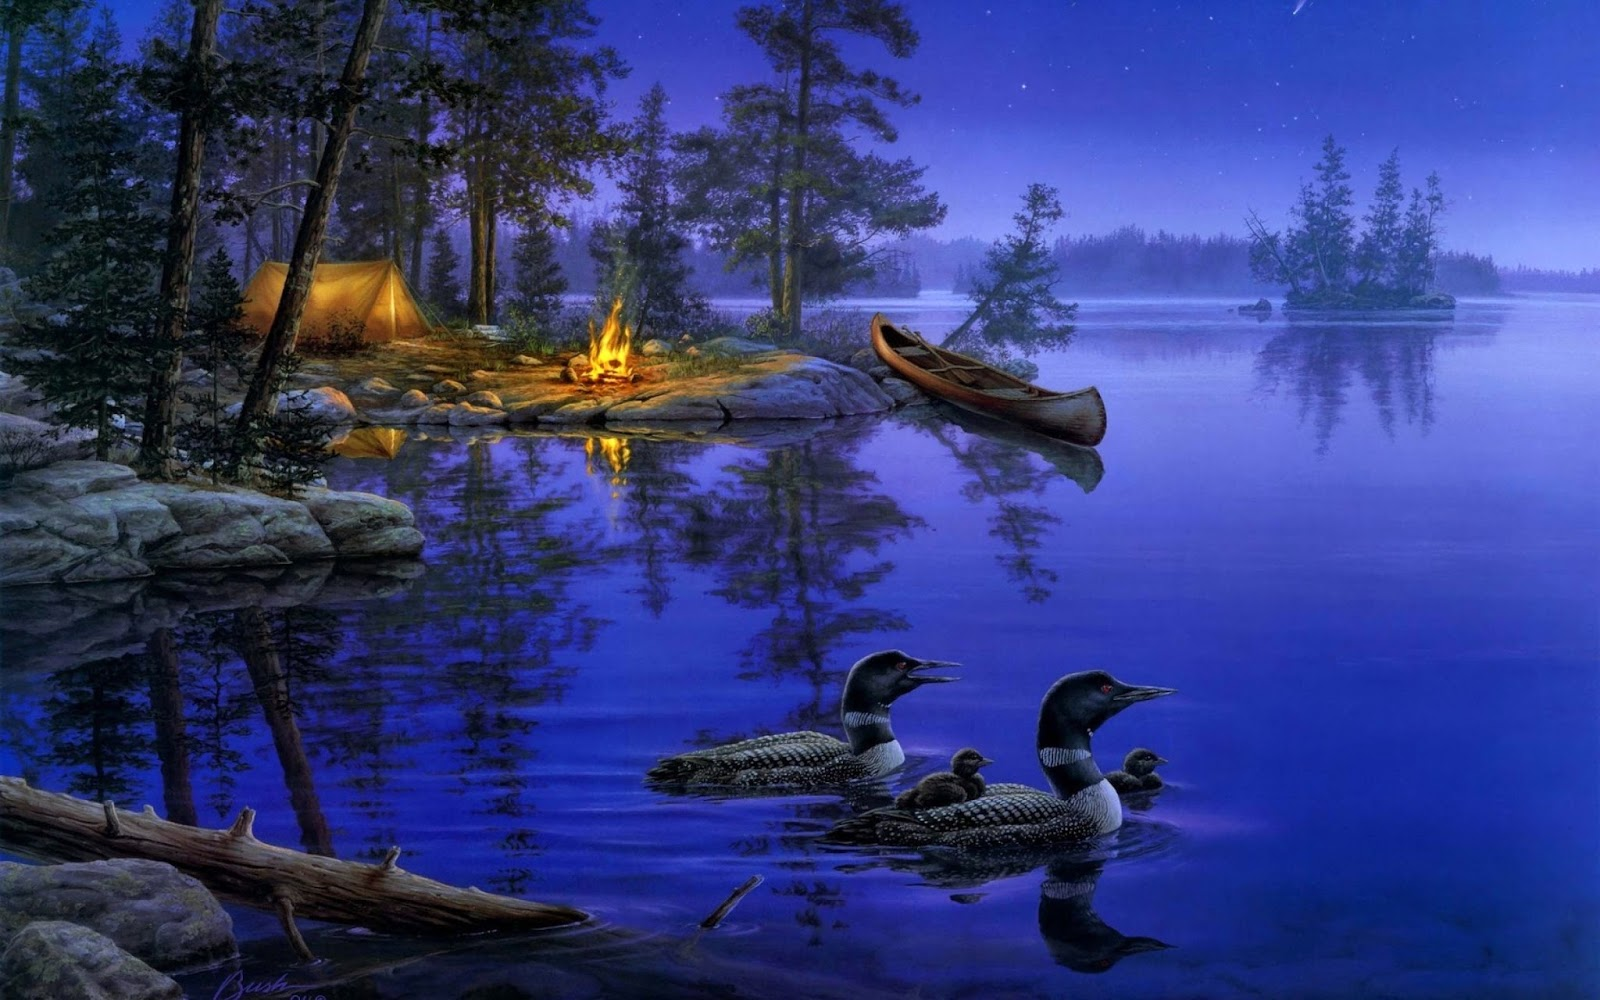 Cool Lovely Good Night Wallpapers 2015 Awesome Free Hd Wallpaper